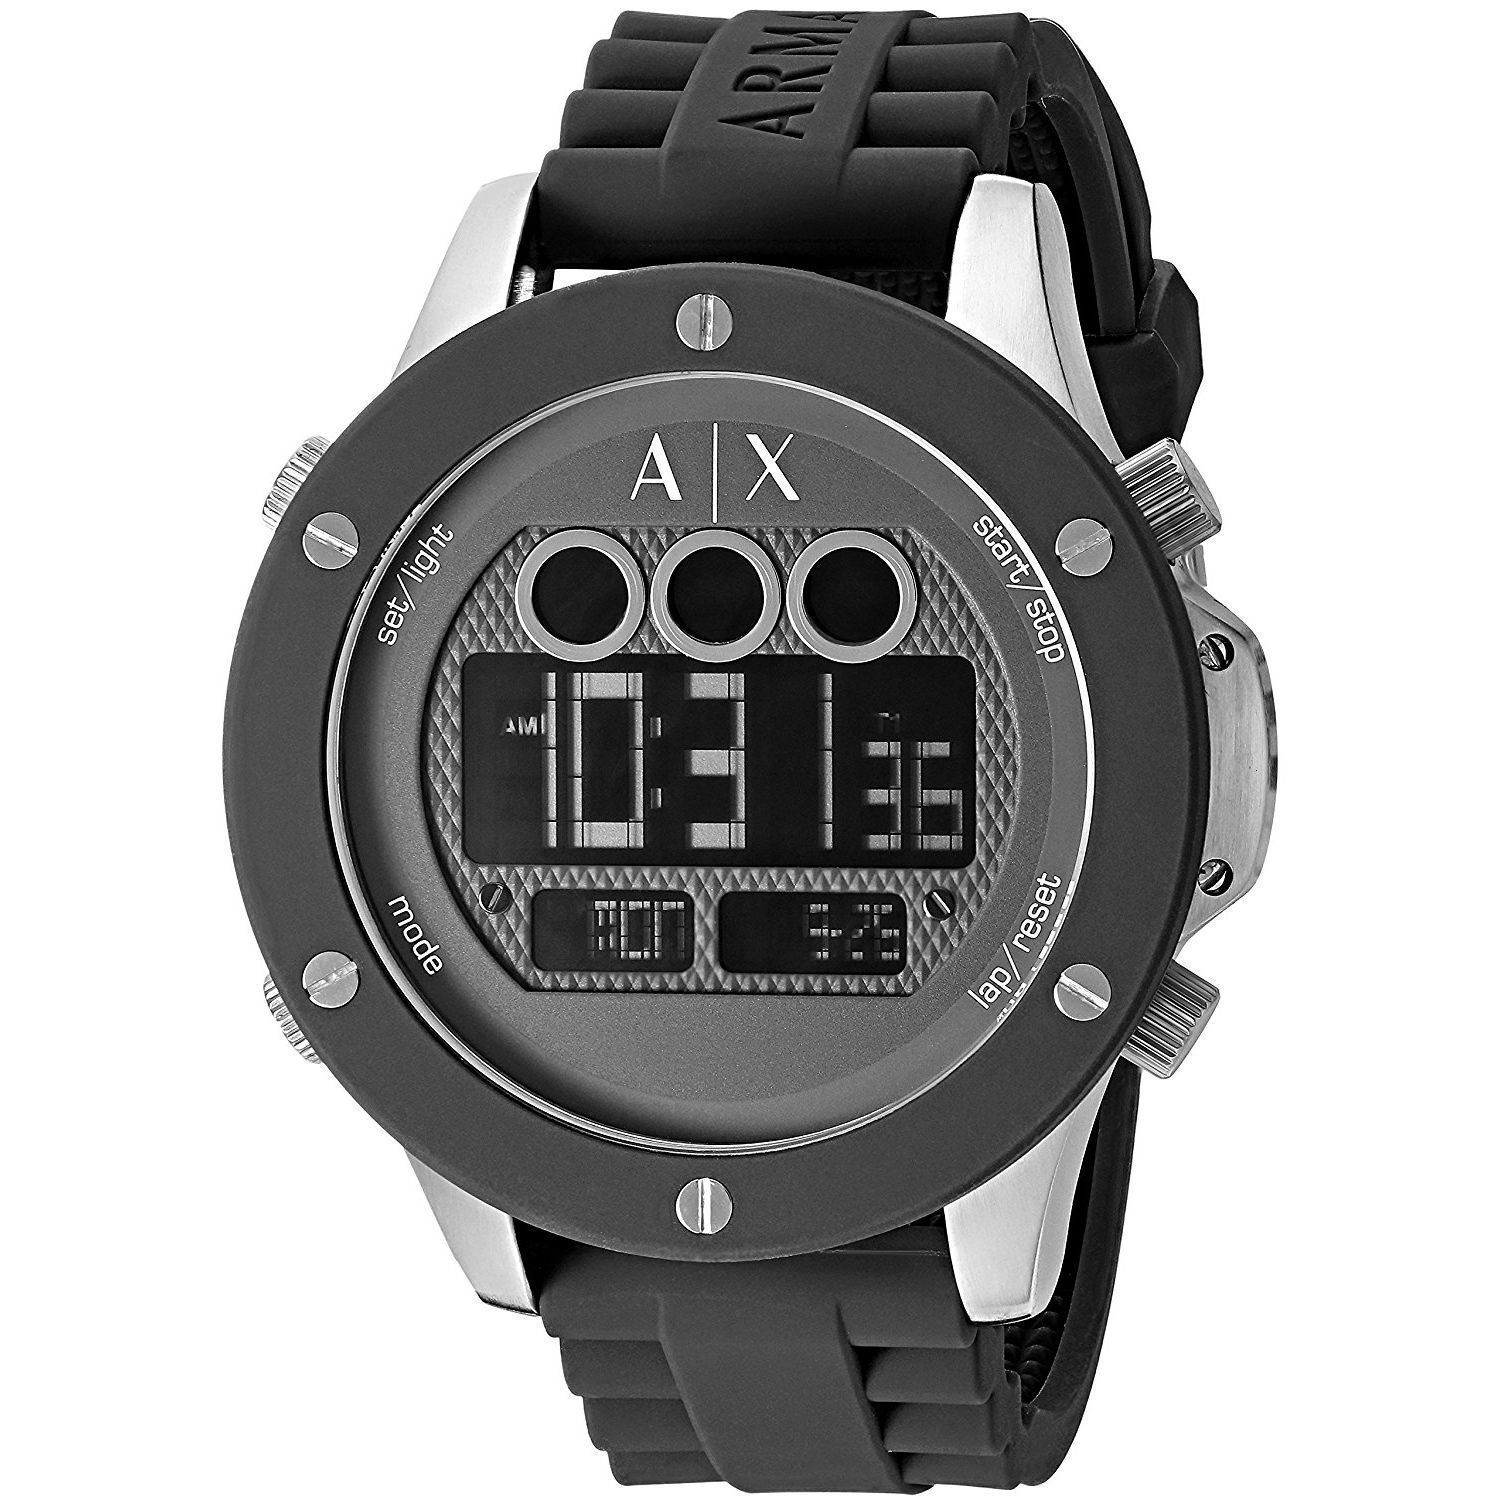 weide active band watch sport watches mens waterproof product rubber